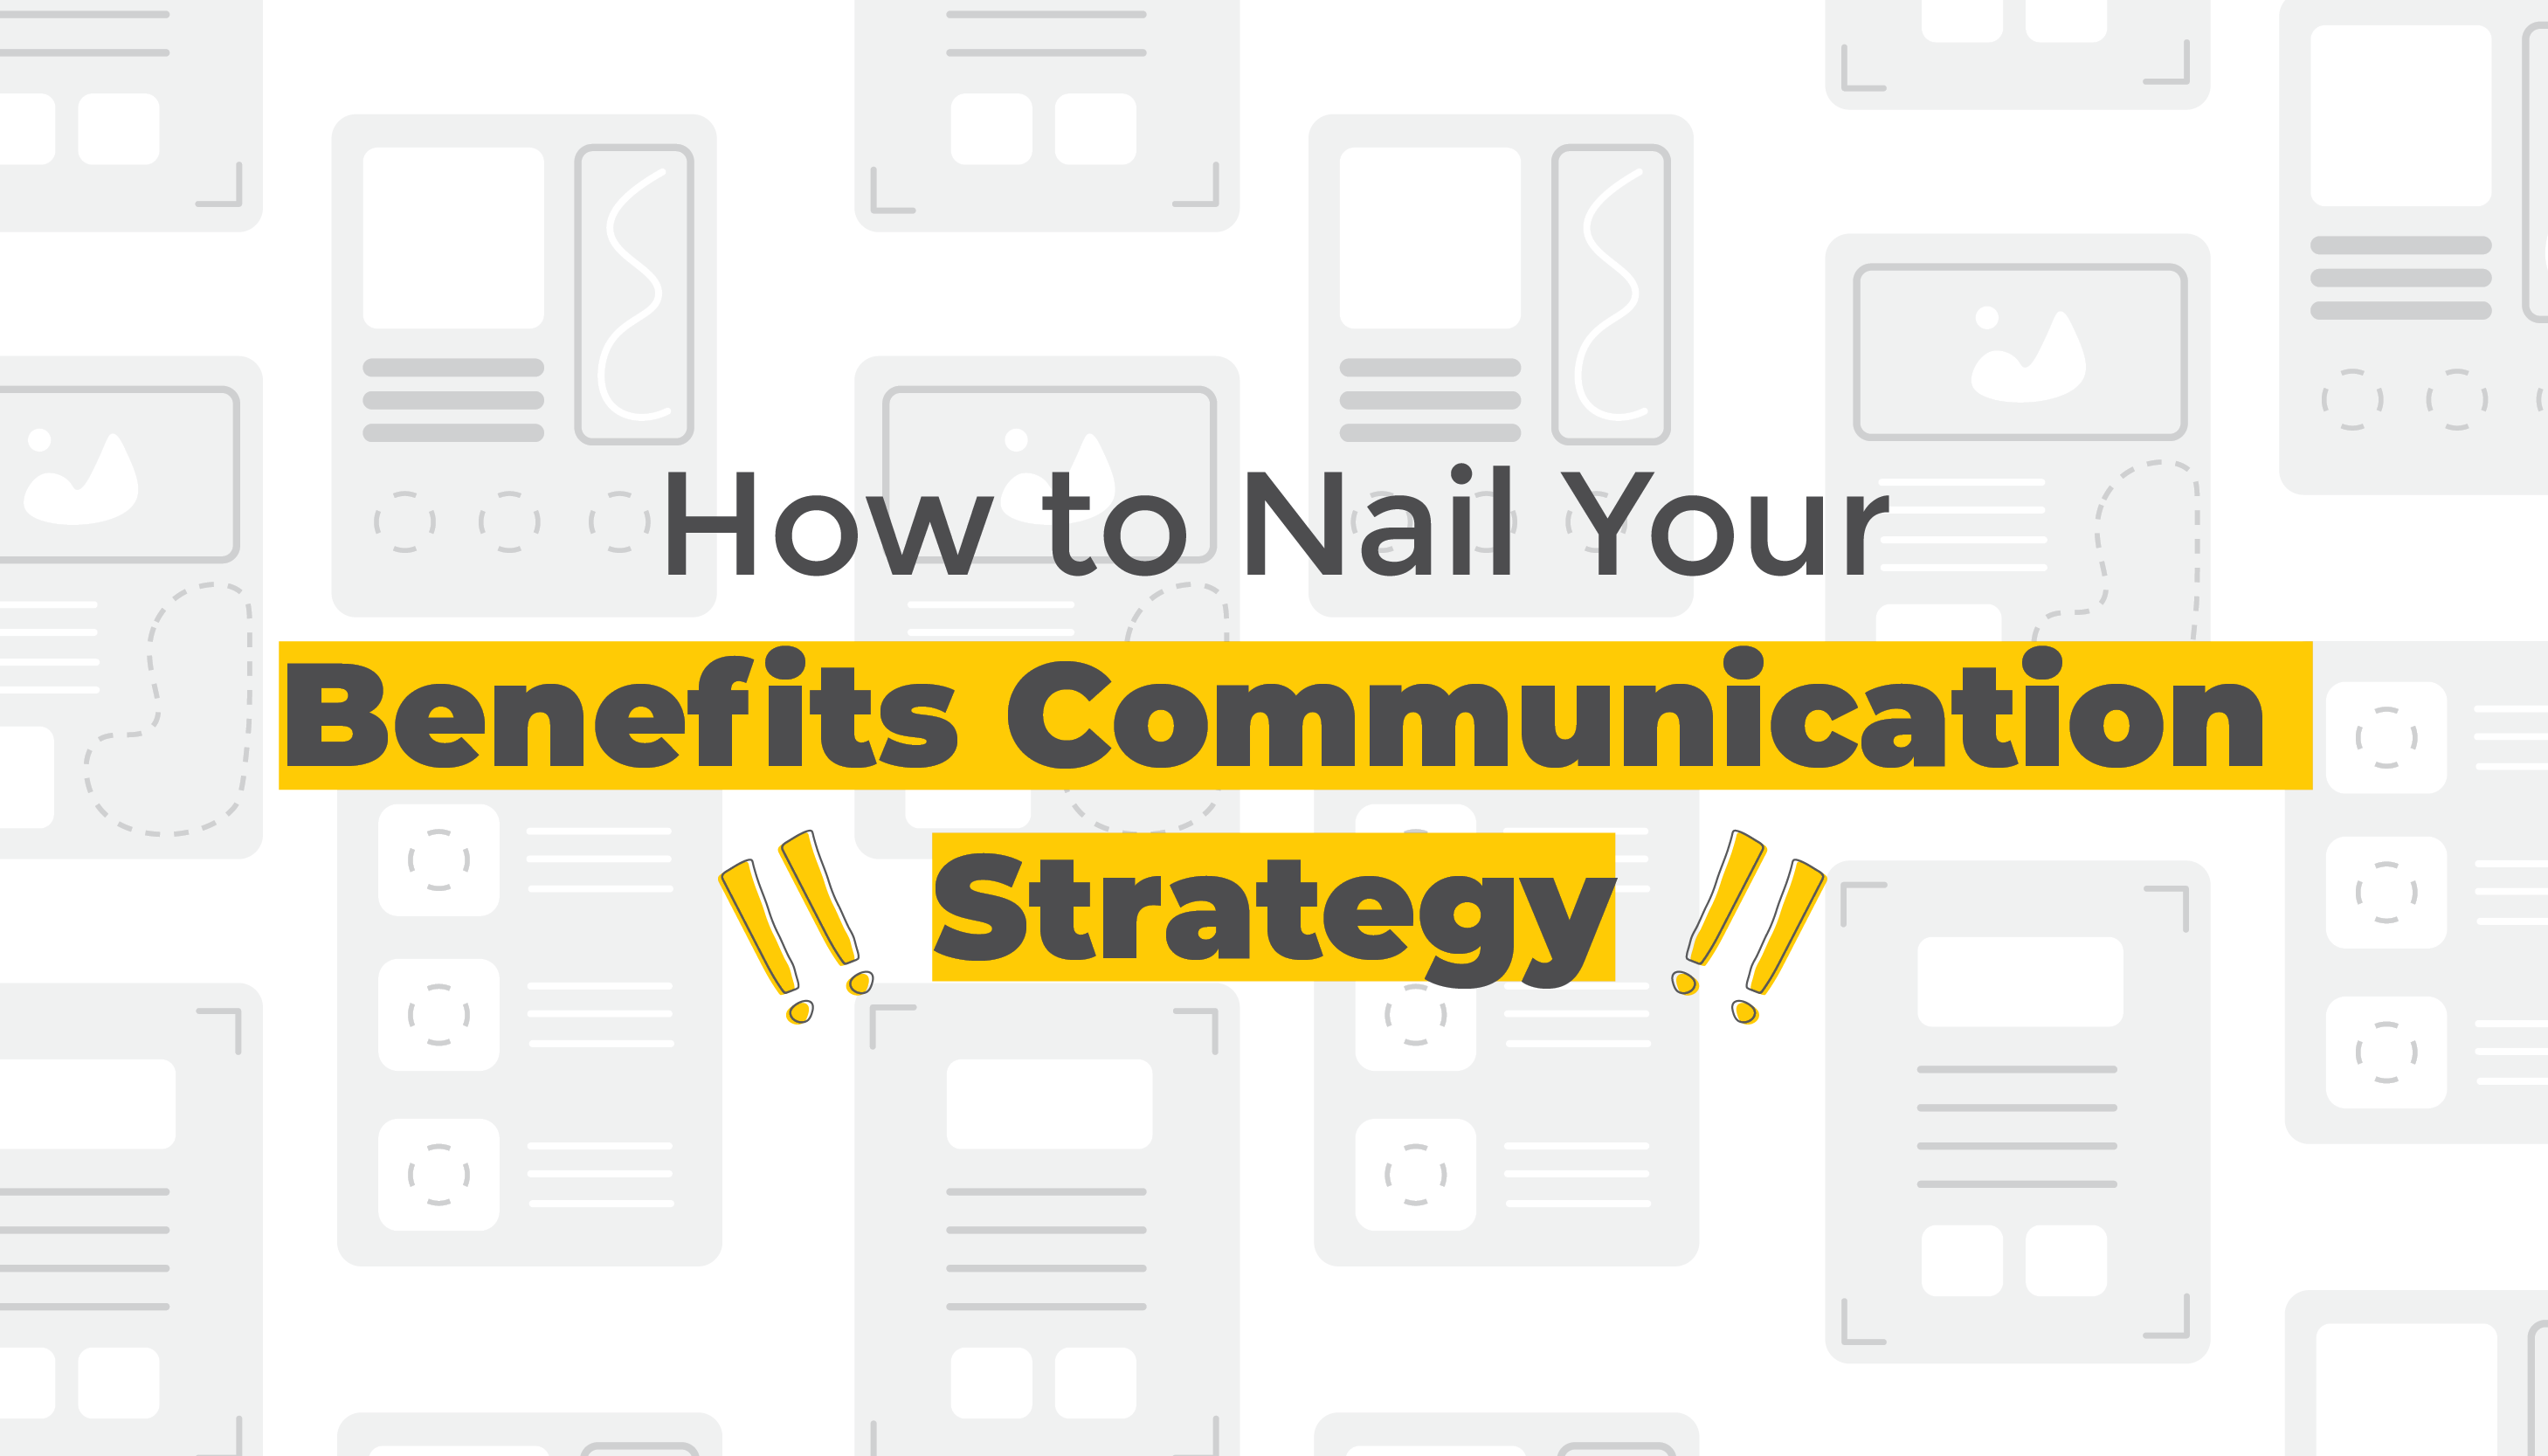 How to Nail Your Benefits Communication Strategy | Benefits Communication | Benefits by Design